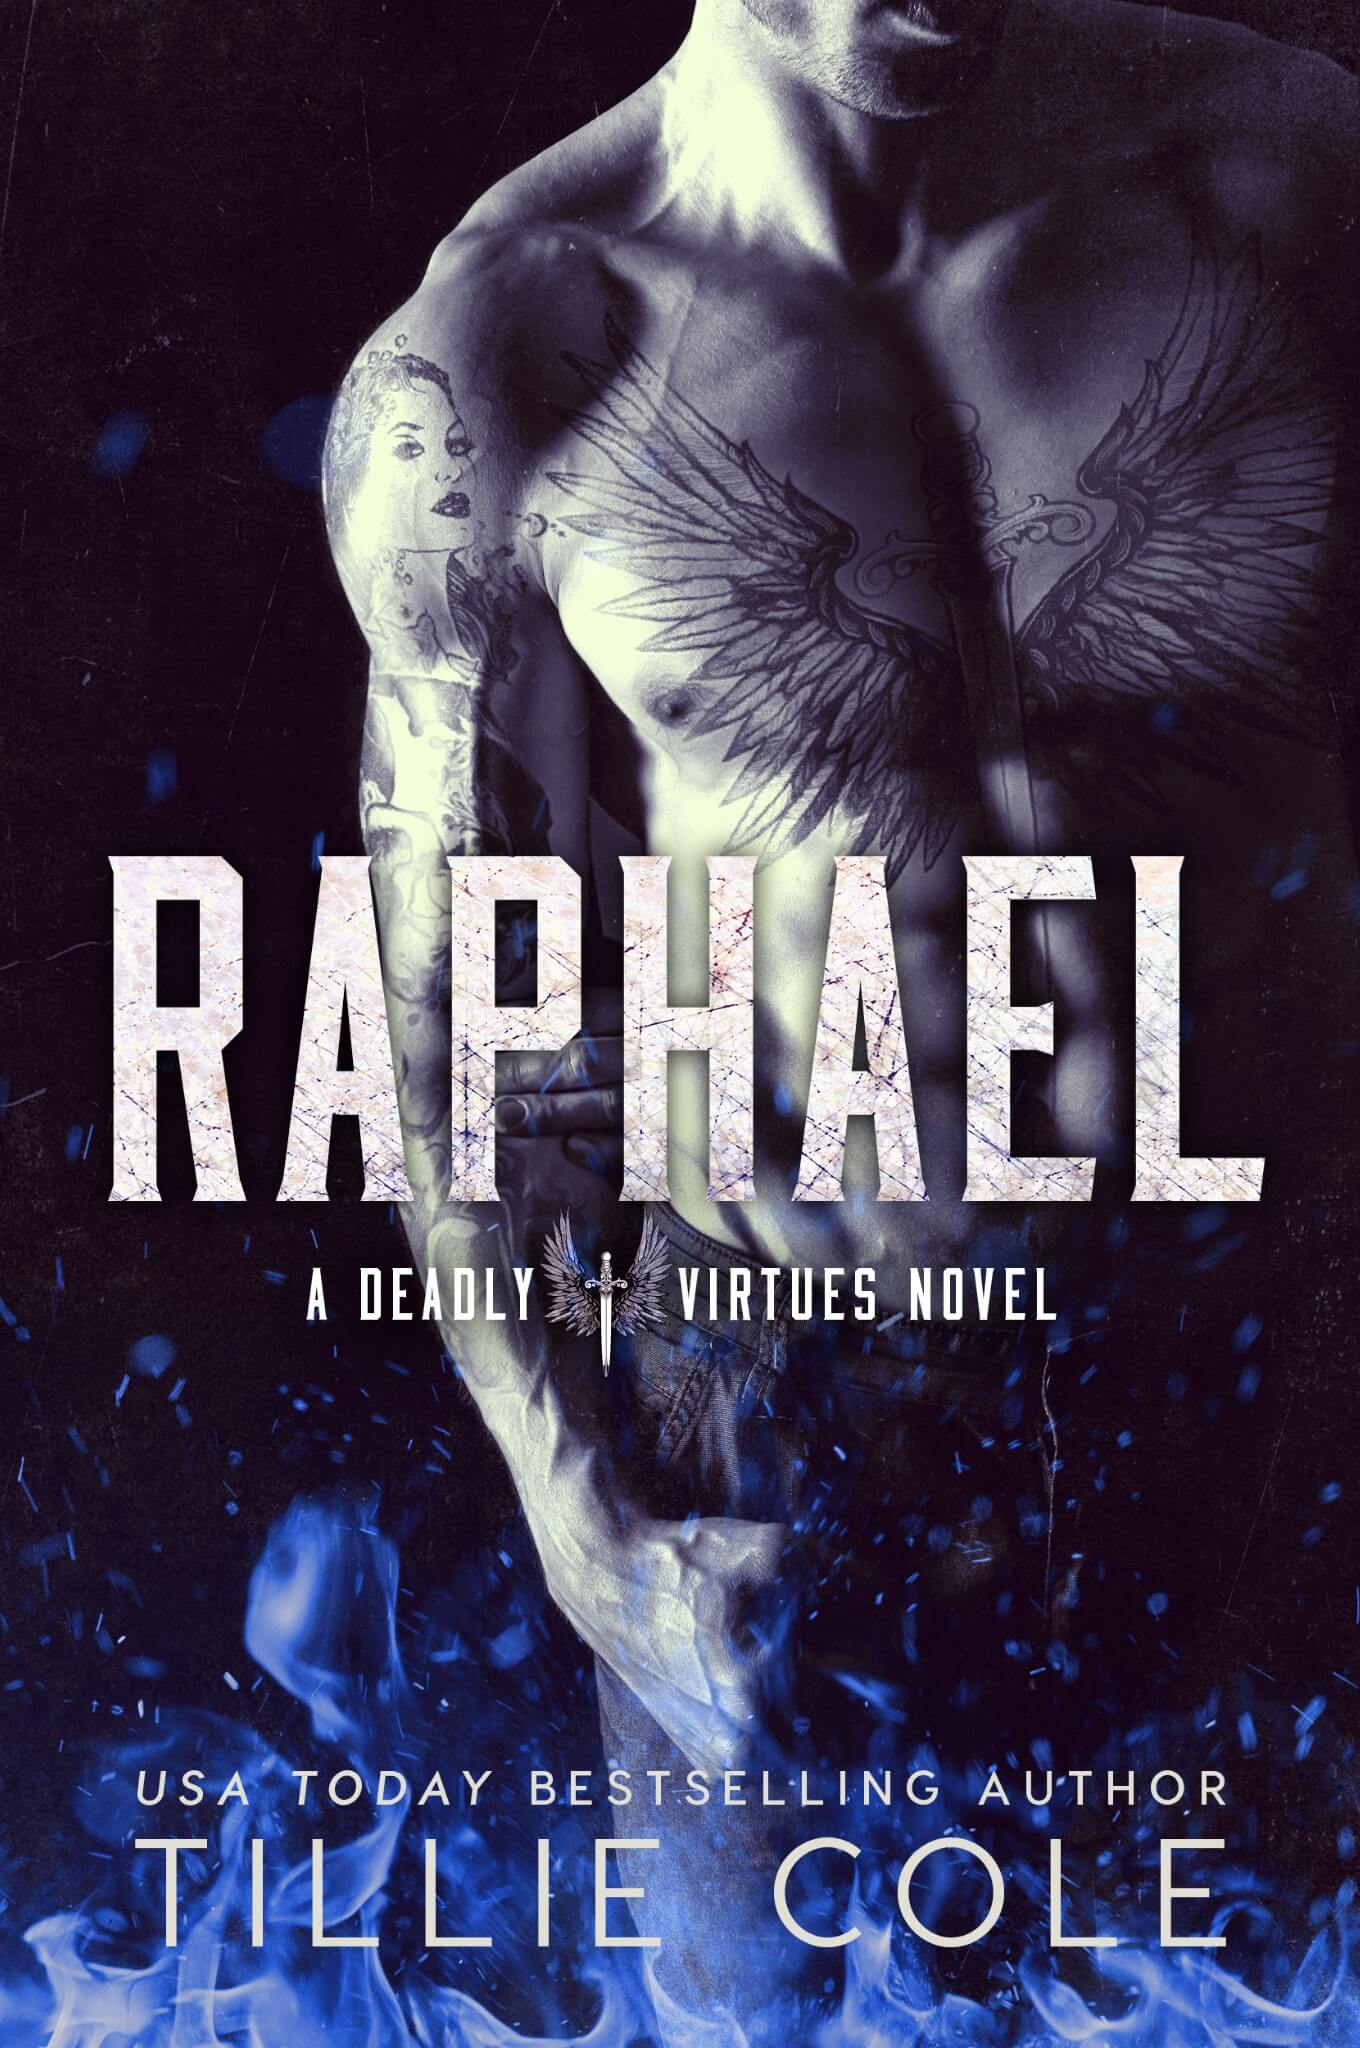 Cover Reveal * Raphael (Deadly Virtues book 1) by Tillie Cole * Coming June 11th